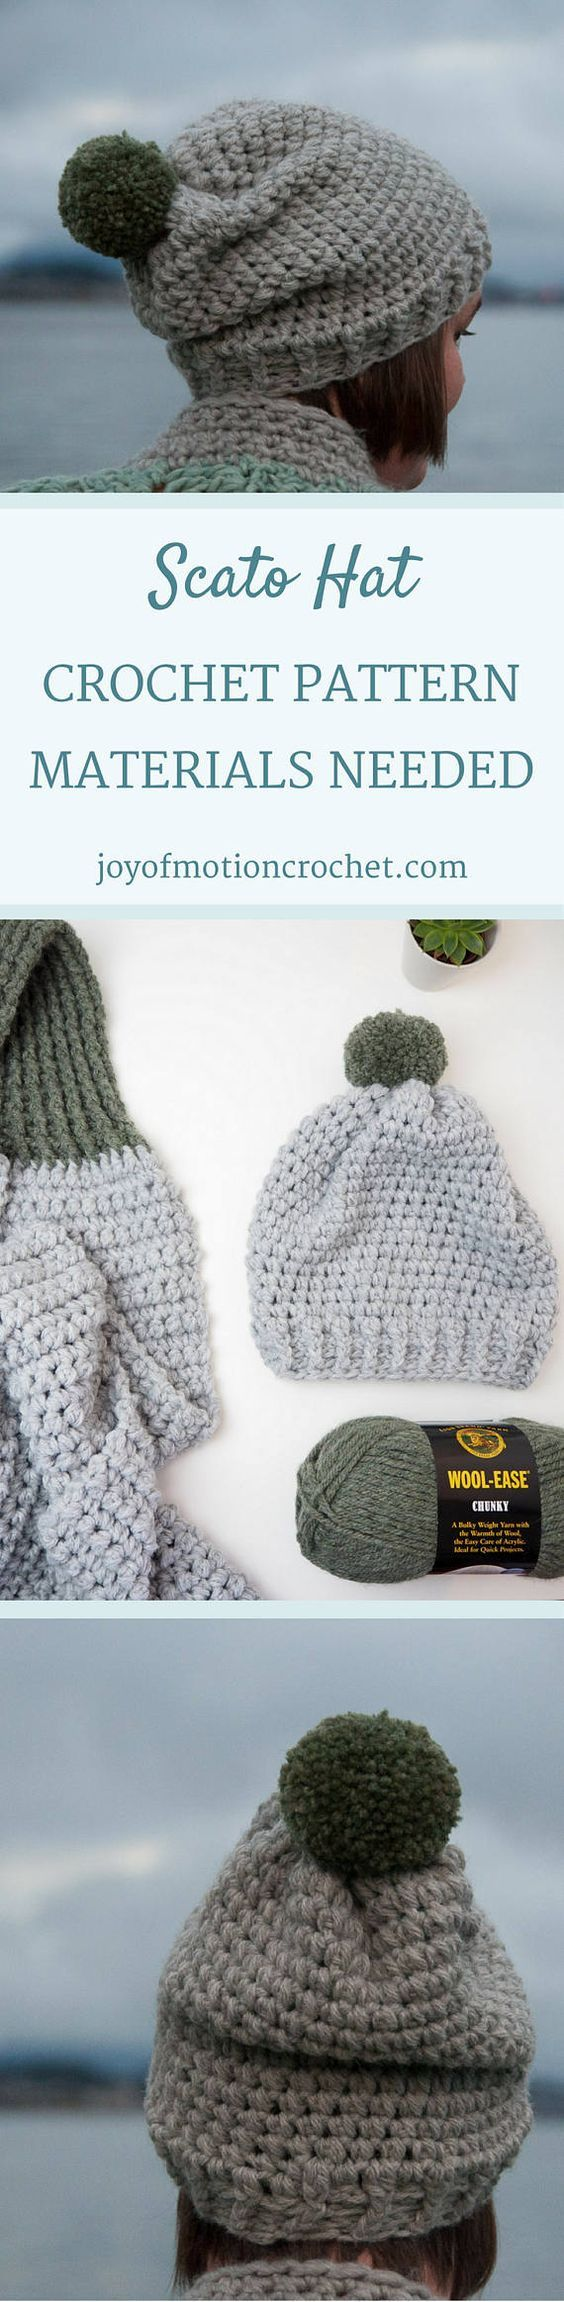 Scato Hat Crochet Pattern ★ Crochet pattern for the Scato Hat, a winter hat/beanie. ★ Easy to modify if you want to change the size. ★ Size: 12-18 months, 18-24 months, 2-5 years, Child, Teen, Adult Woman, Adult Man ★ Skill level: EASY ★ Language: English / US crochet terms. The Scato